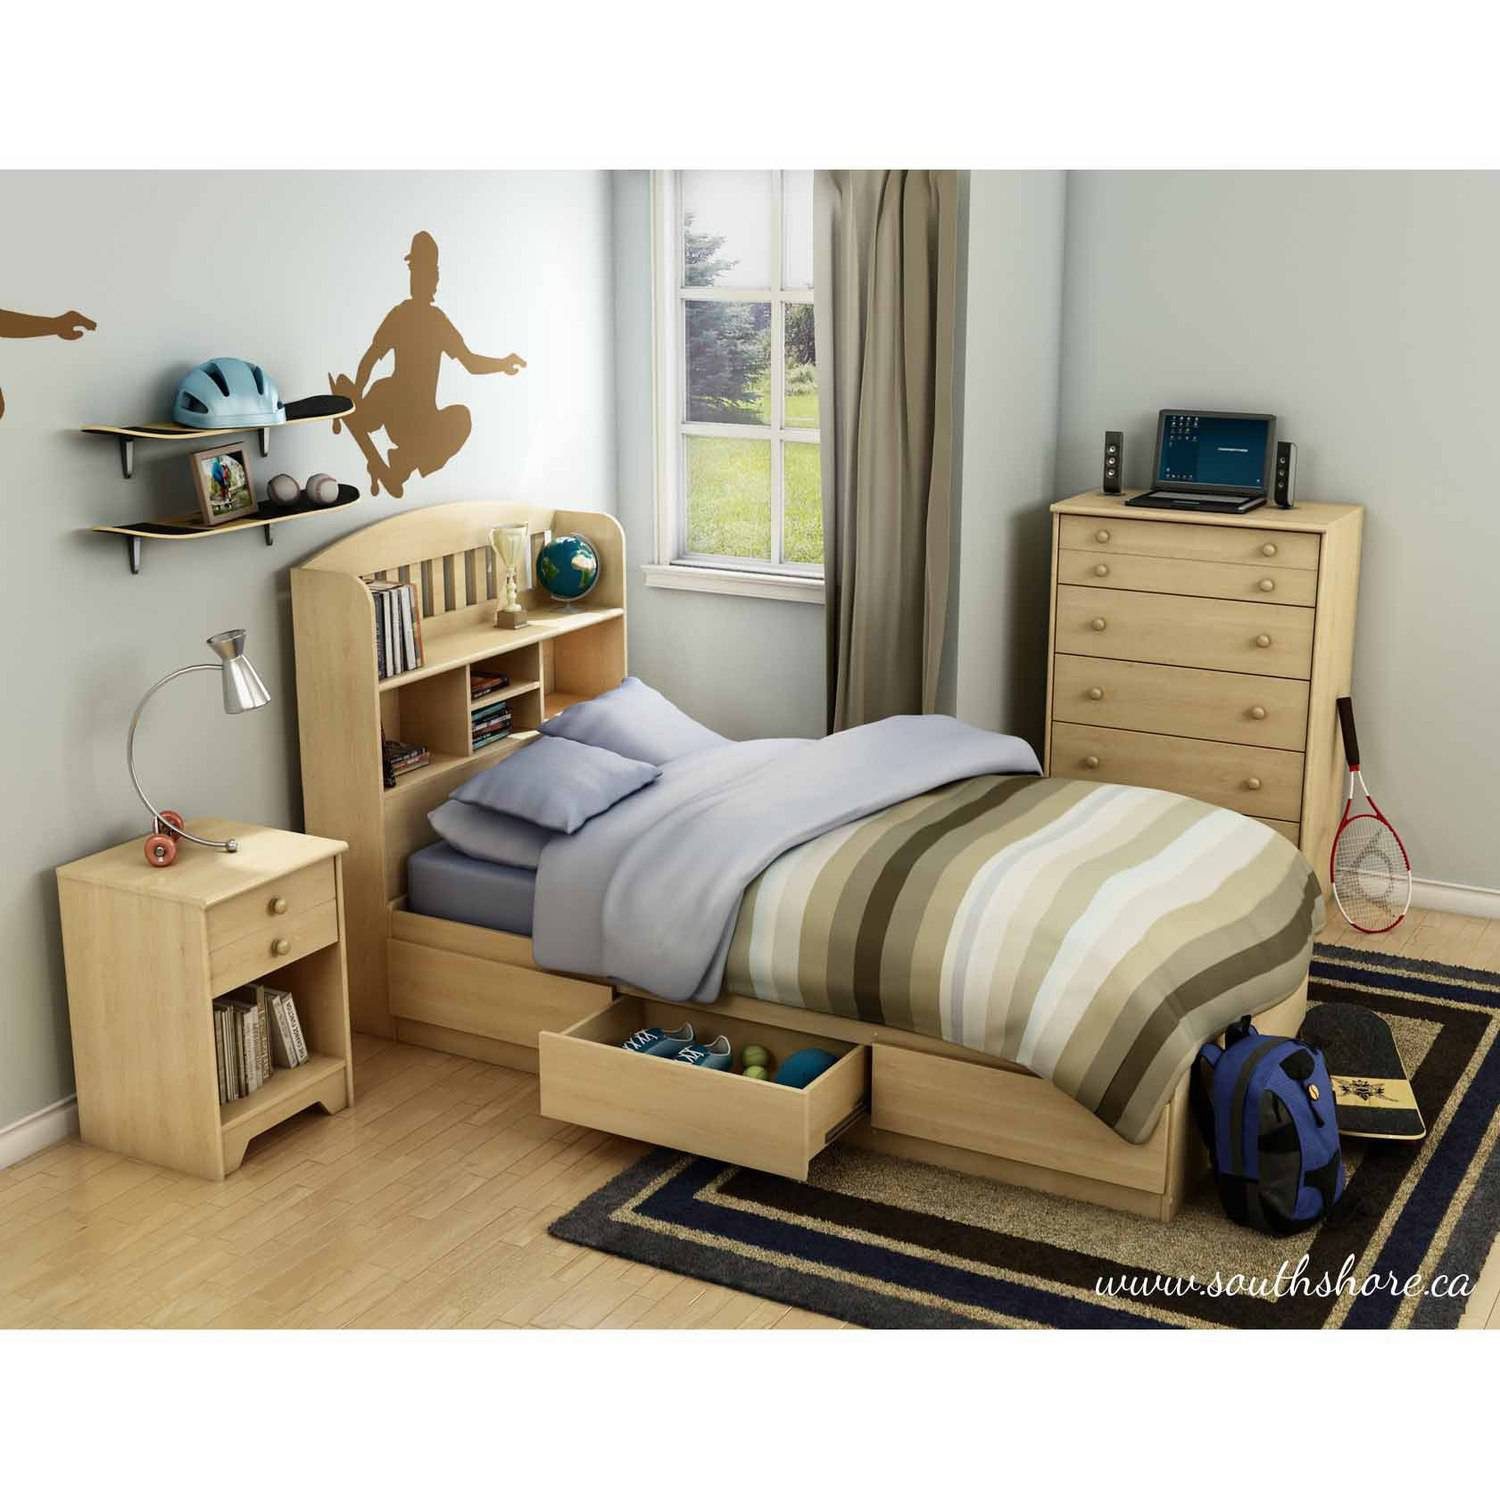 South Shore Popular Kids Bedroom Furniture Collection